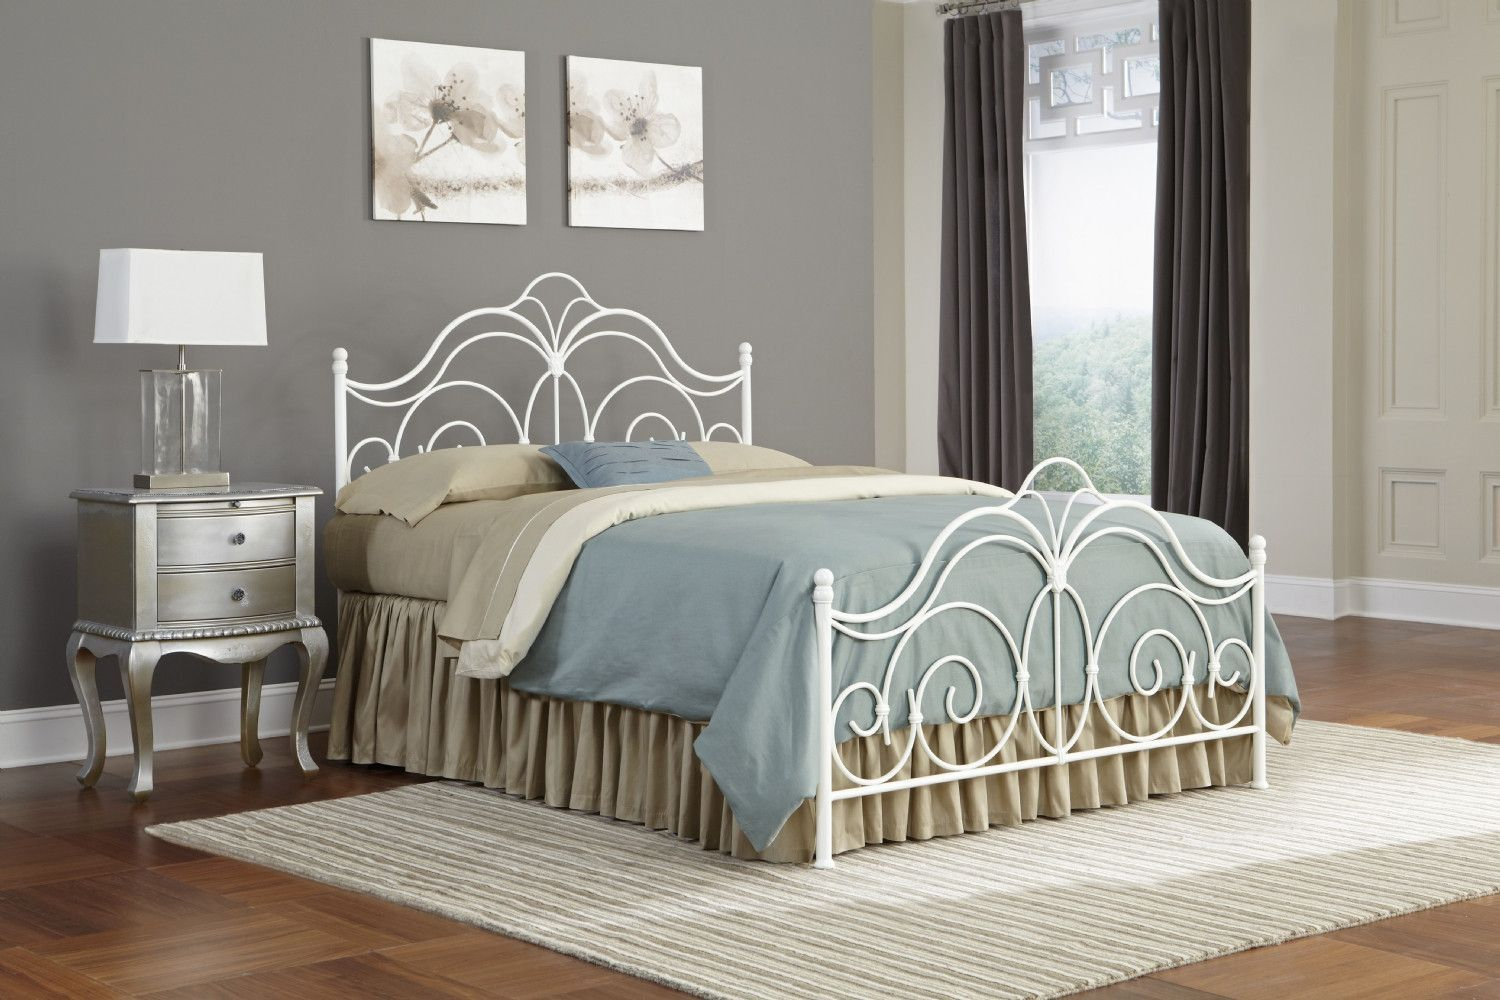 Rhapsody Headboard or Complete Bed